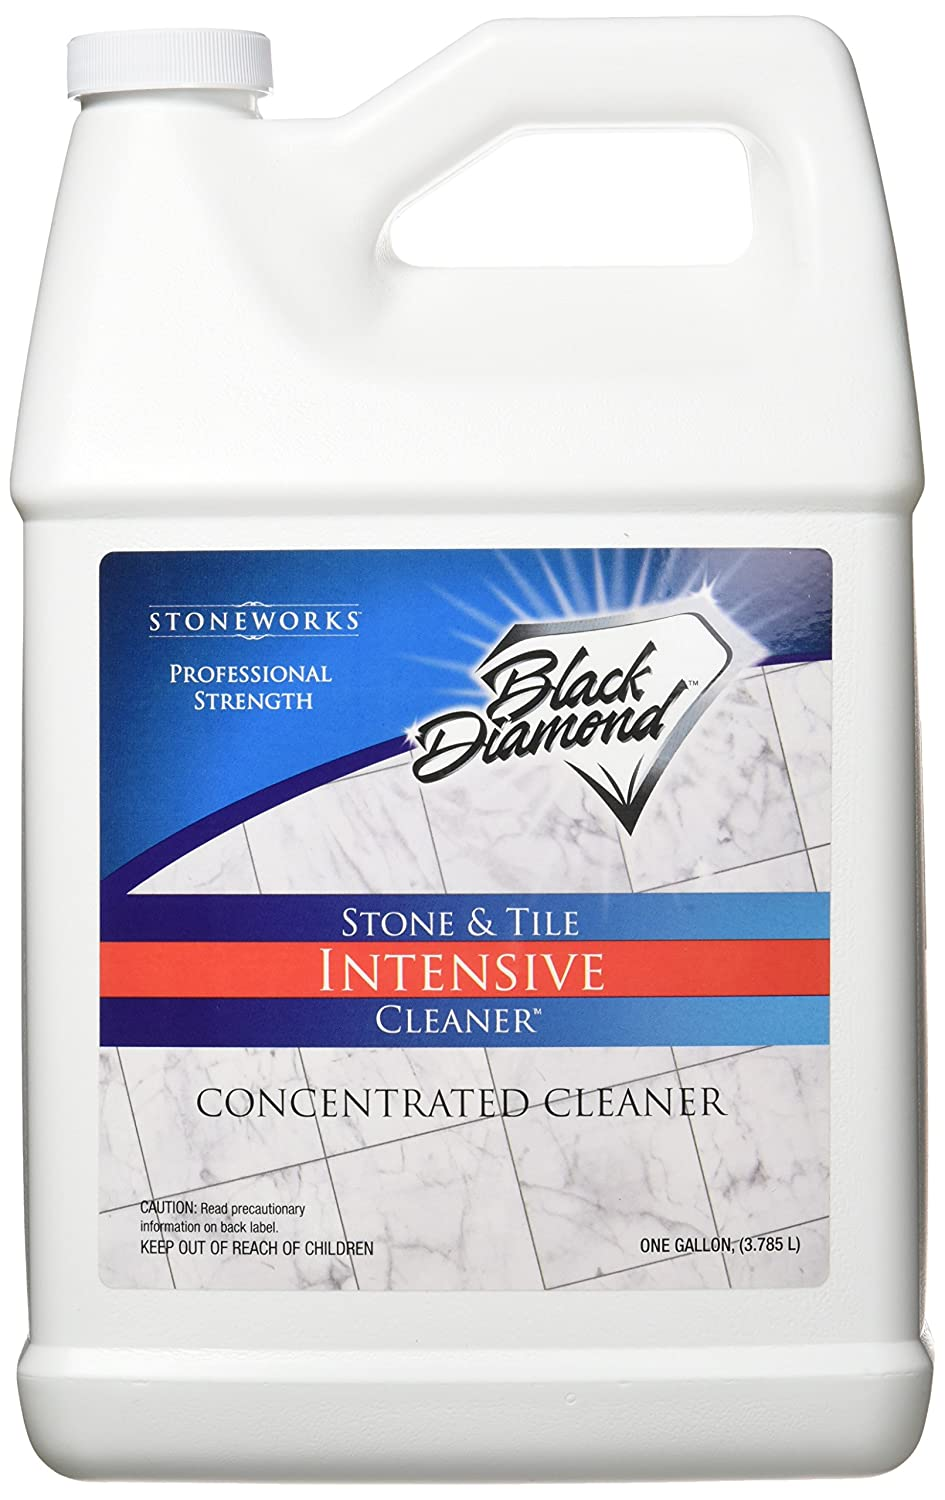 Amazon stone tile intensive cleaner concentrated deep amazon stone tile intensive cleaner concentrated deep cleaner marble limestone travertine granite slate ceramic porcelain tile dailygadgetfo Image collections